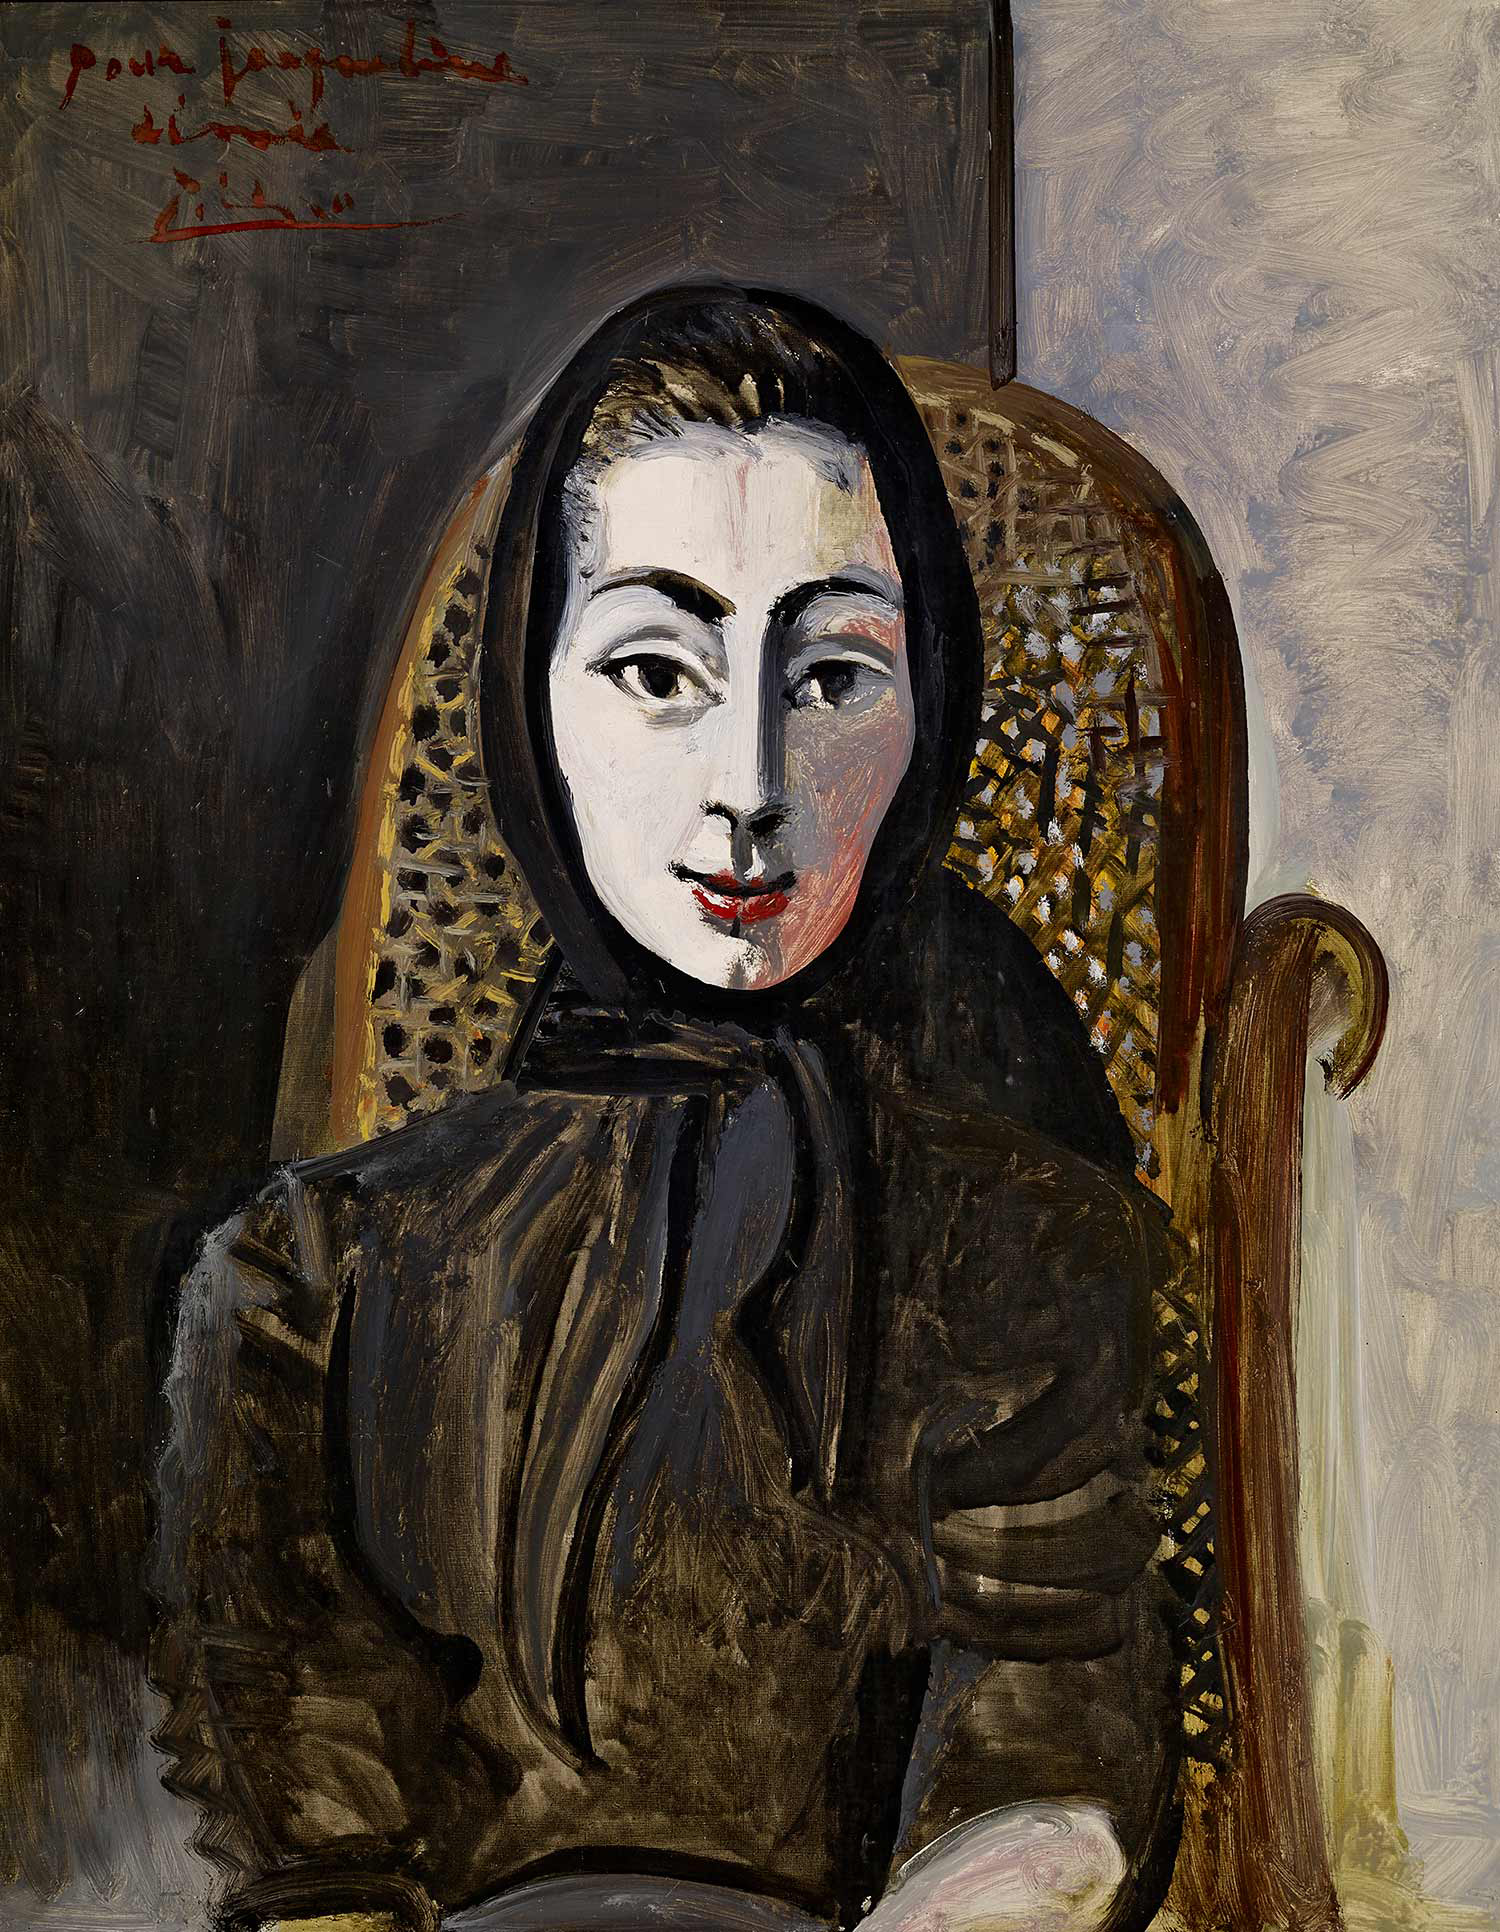 Pablo Picasso, 'Portrait of Jacqueline in a Black Scarf',